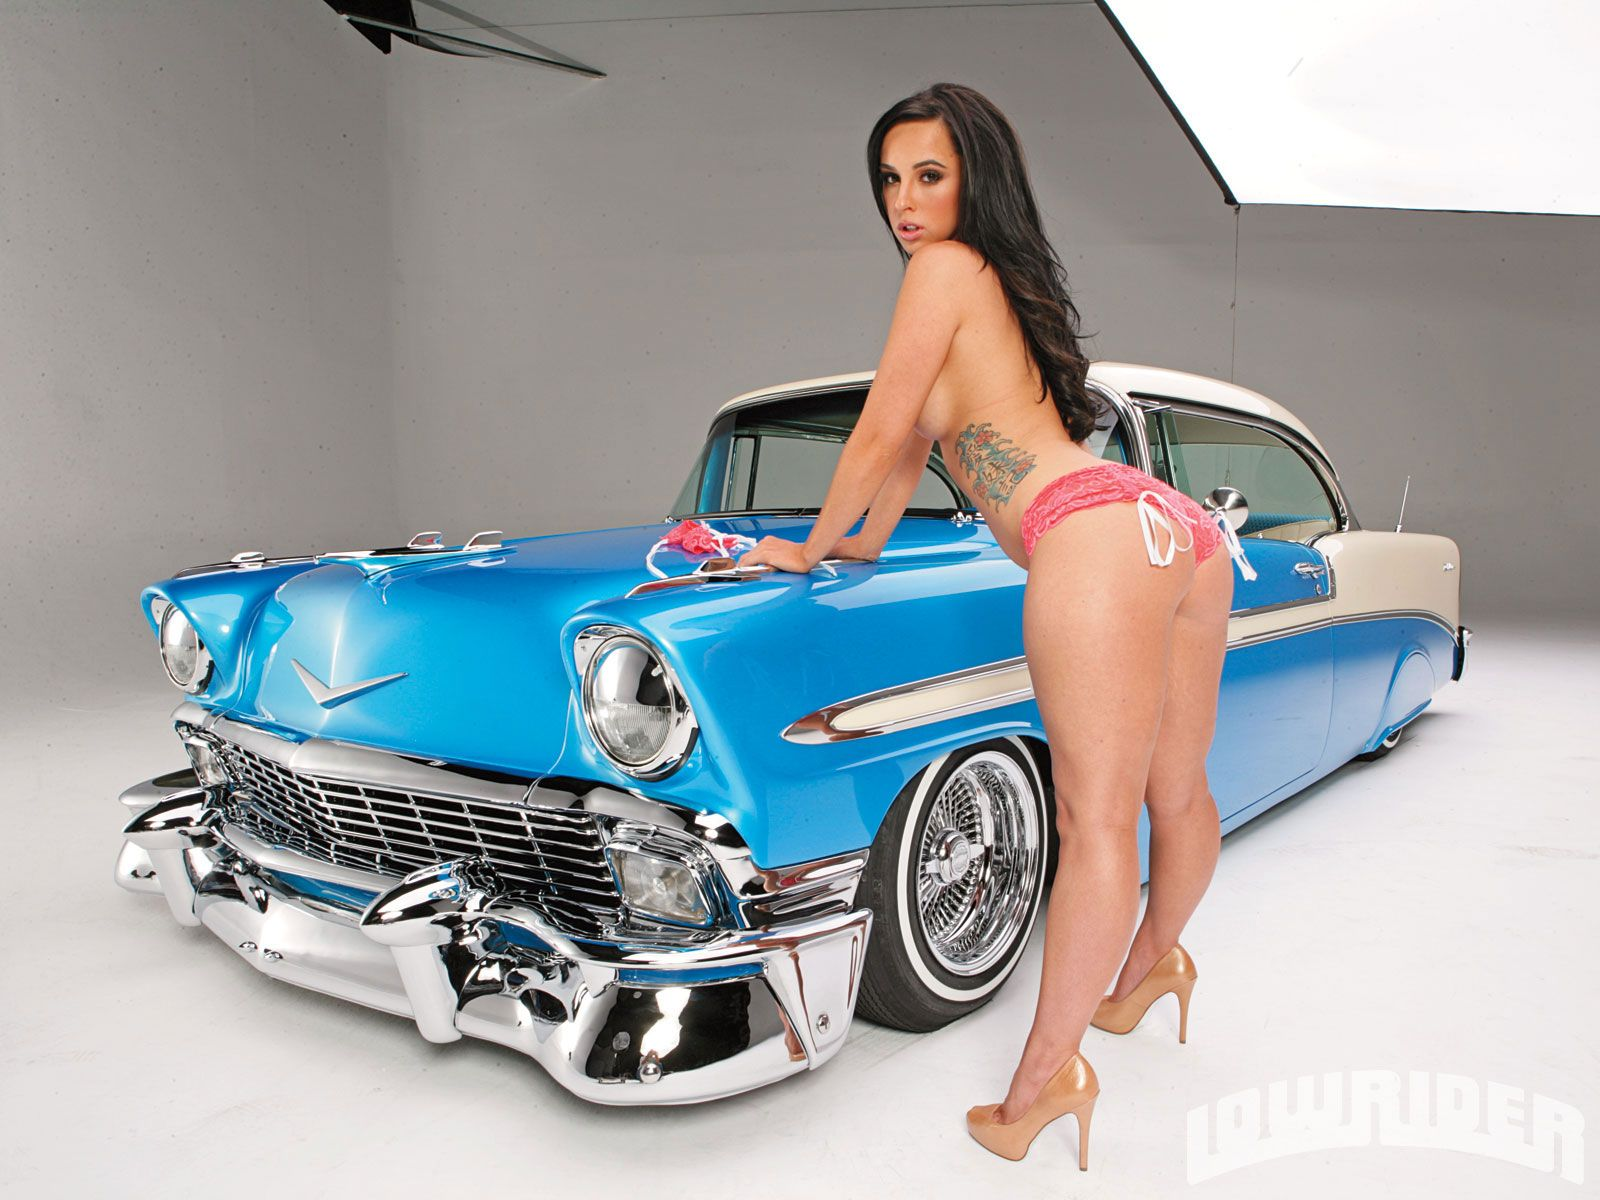 That interfere, Lowrider with naked graphics